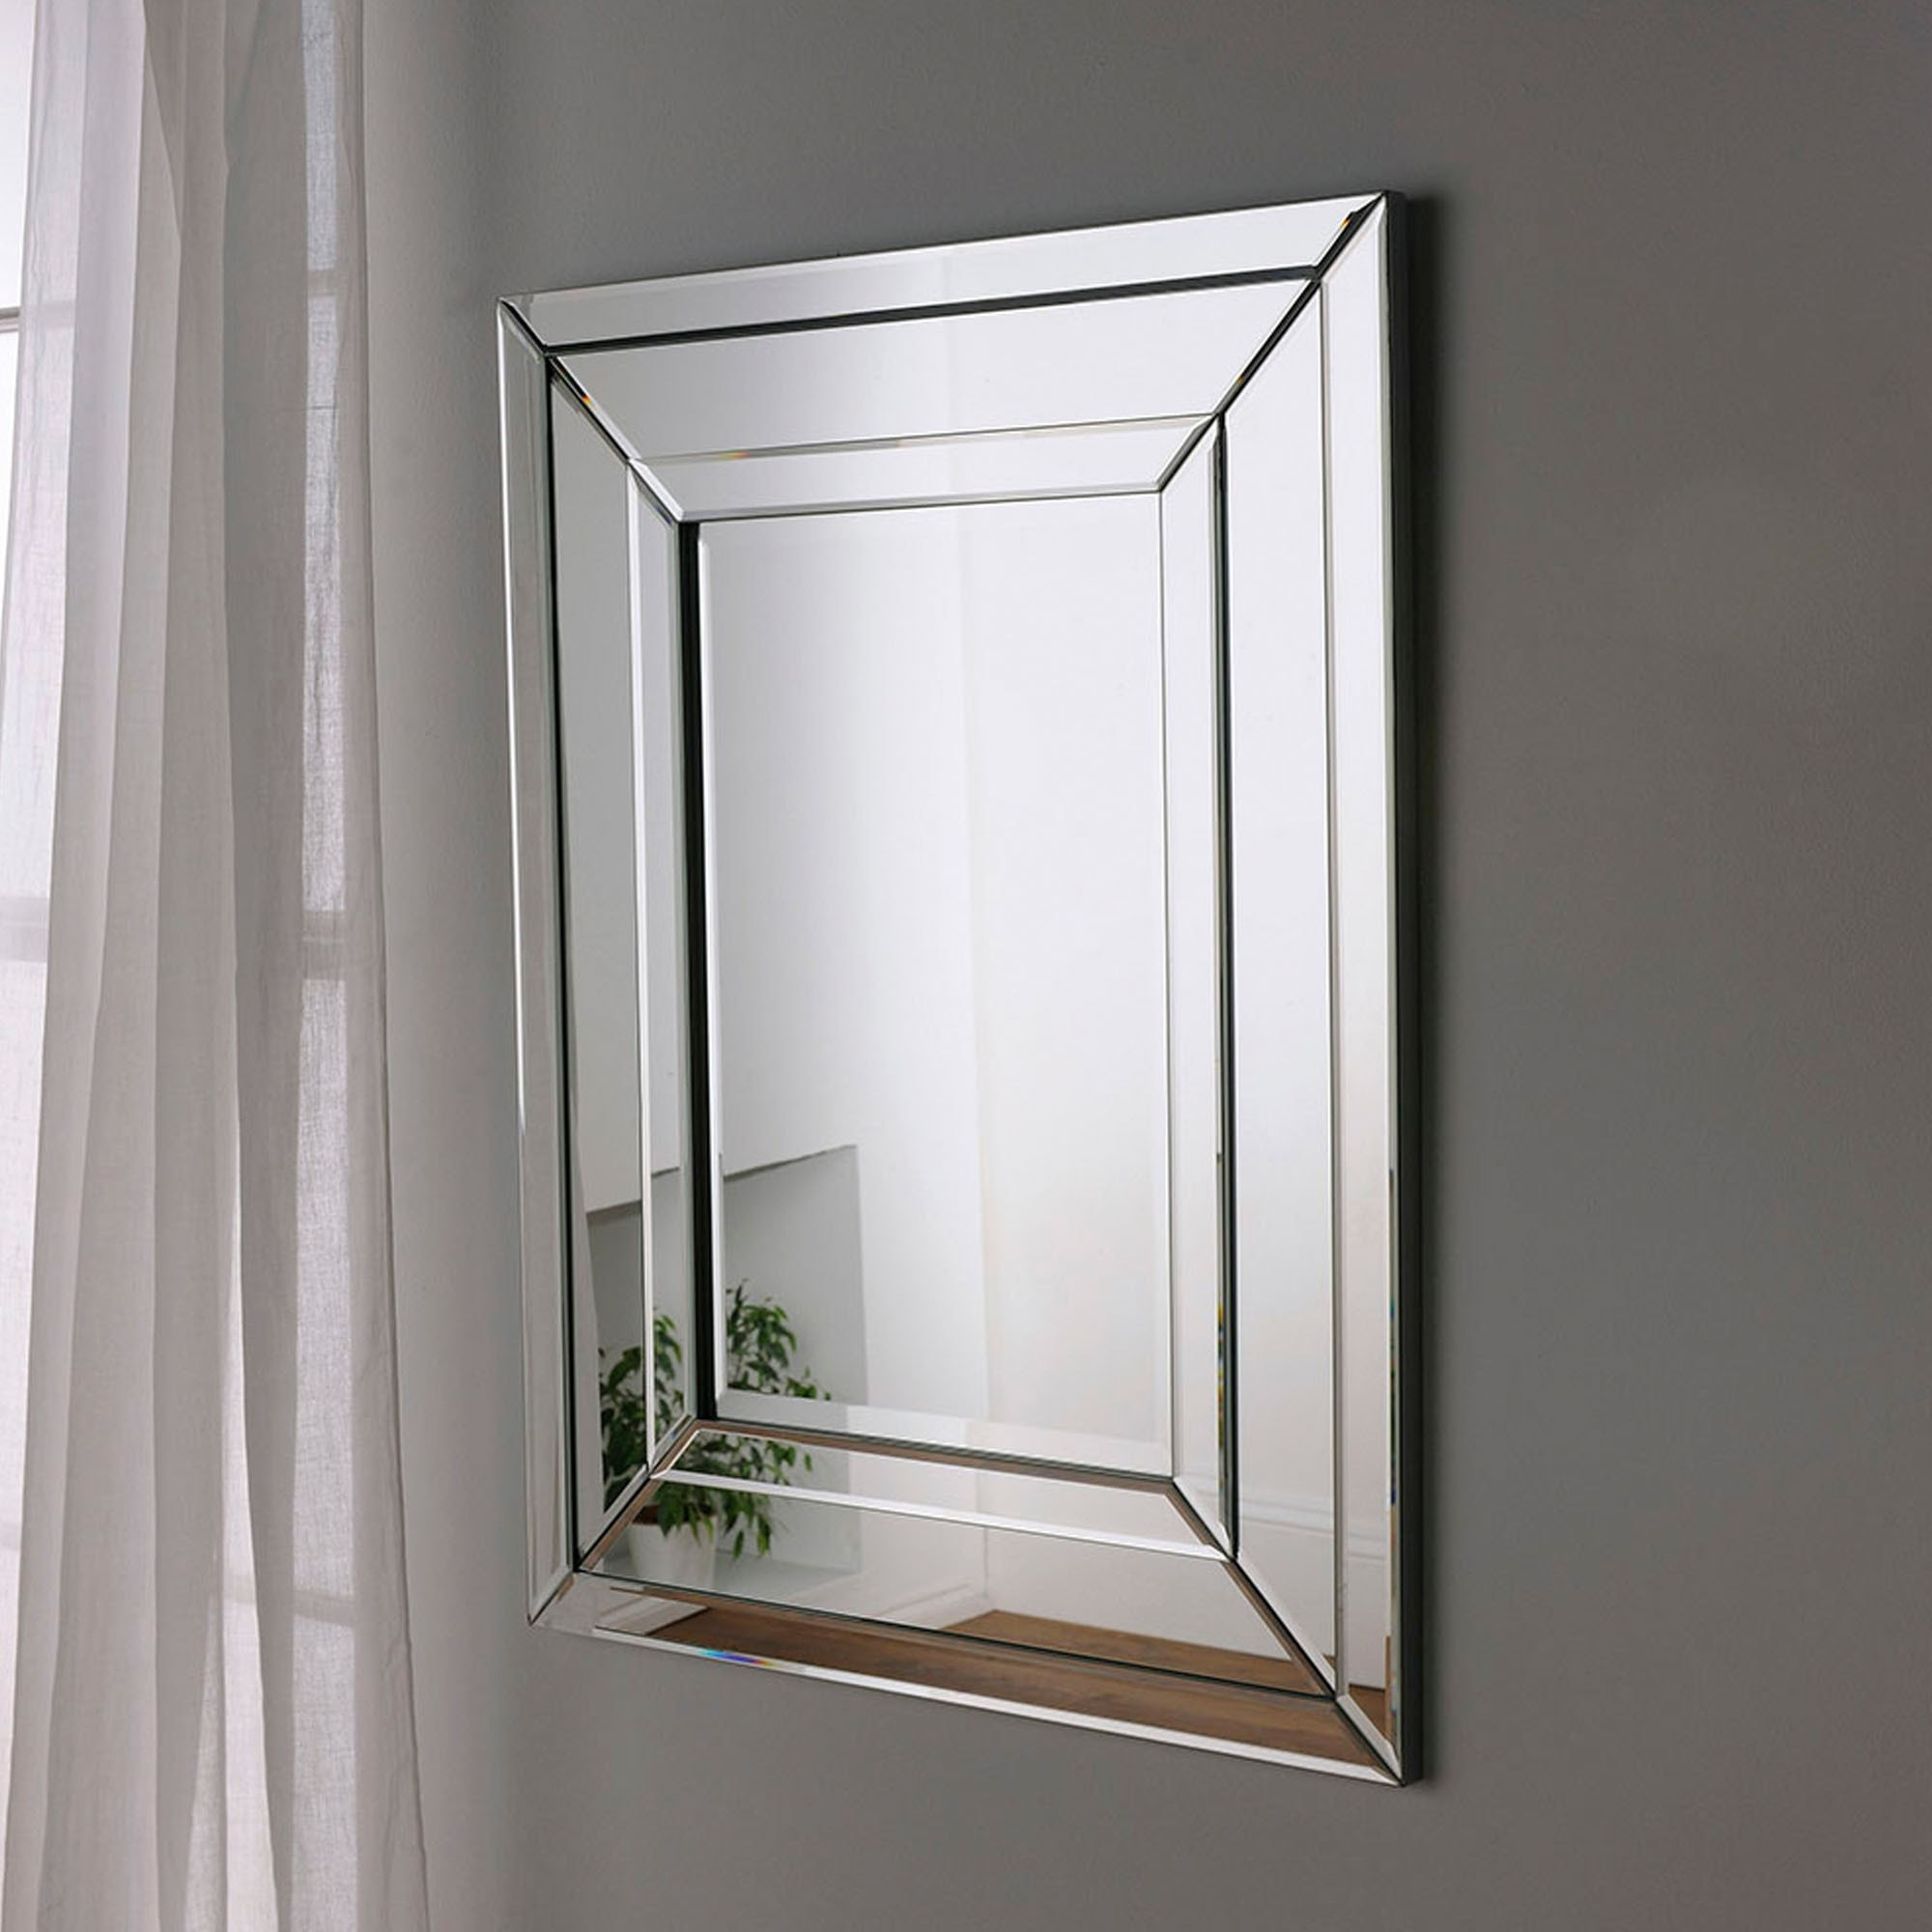 Venetian Wall Mirrors Throughout Well Known Contemporary Venetian Wall Mirror (View 17 of 20)